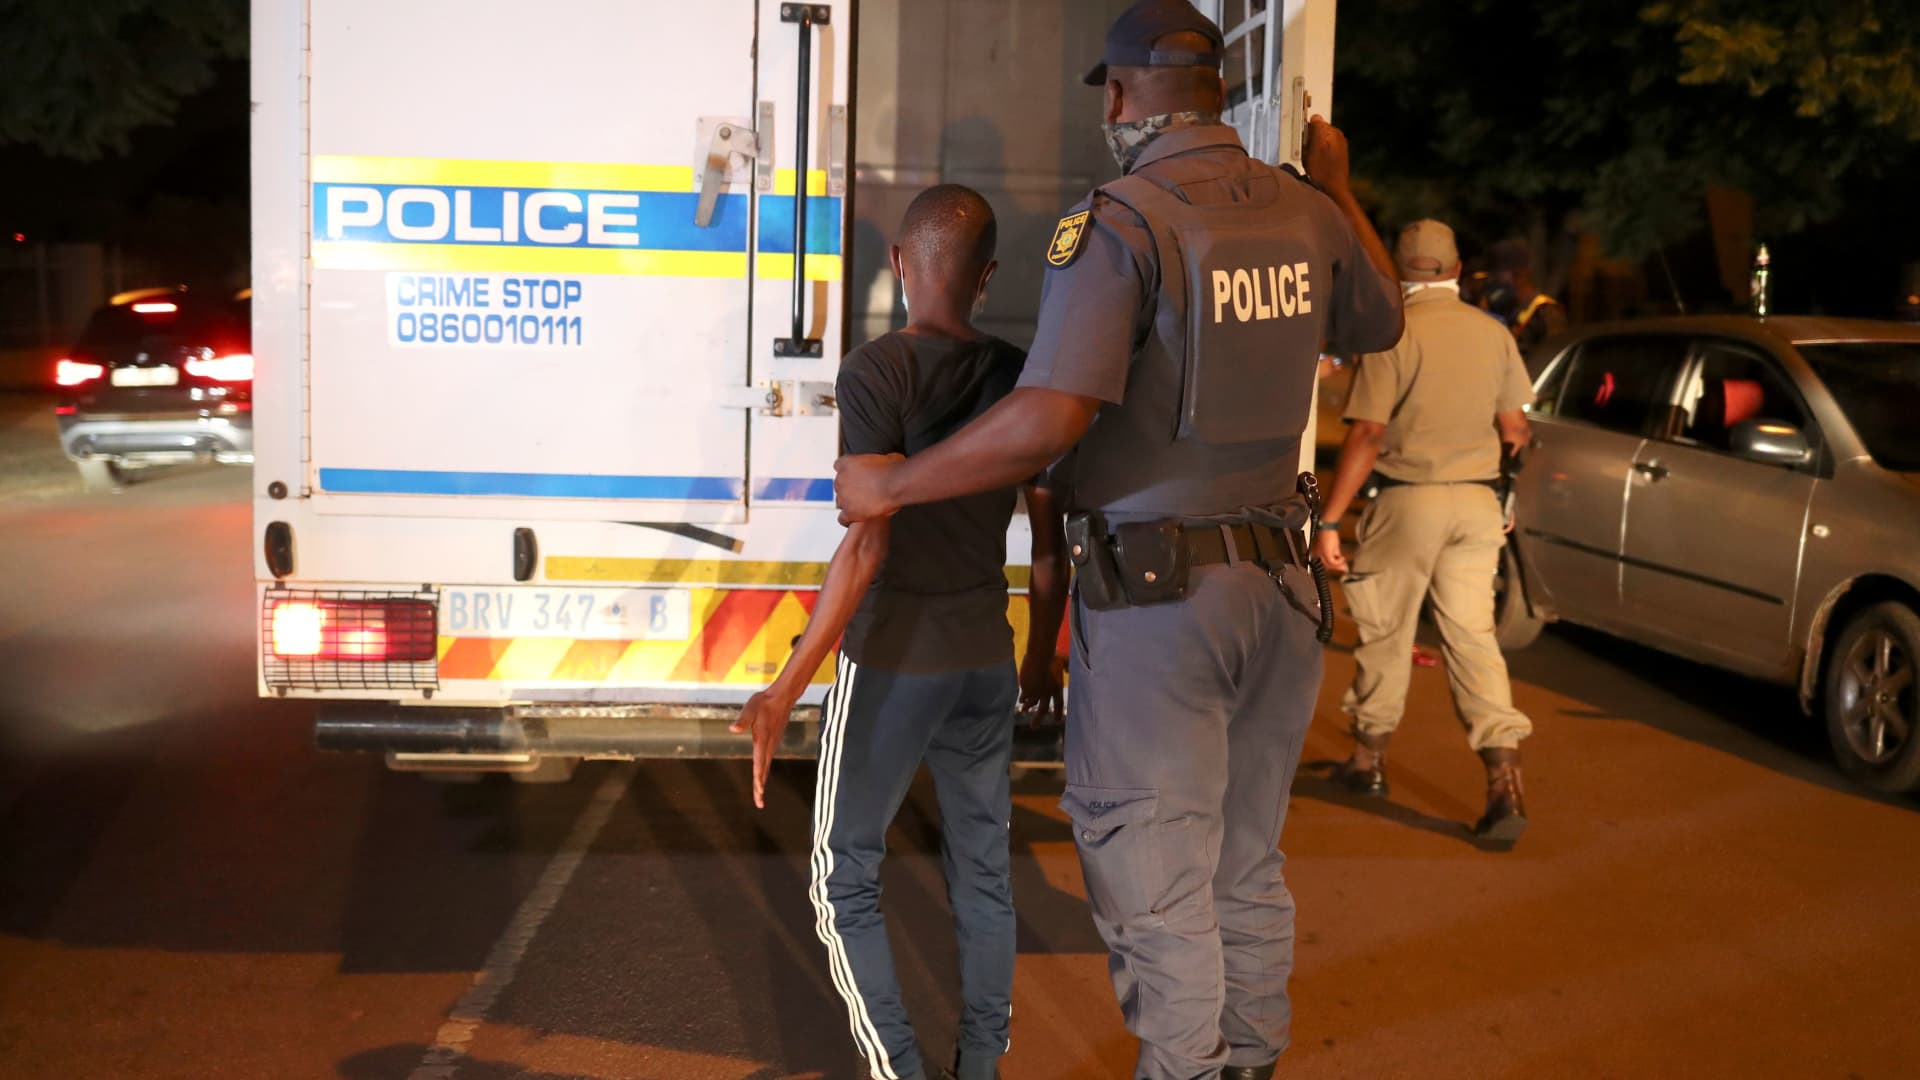 A police officer detains a man during a patrol as a nighttime curfew is reimposed amid a nationwide coronavirus disease (COVID-19) lockdown, in Pretoria, South Africa, January 9, 2021.